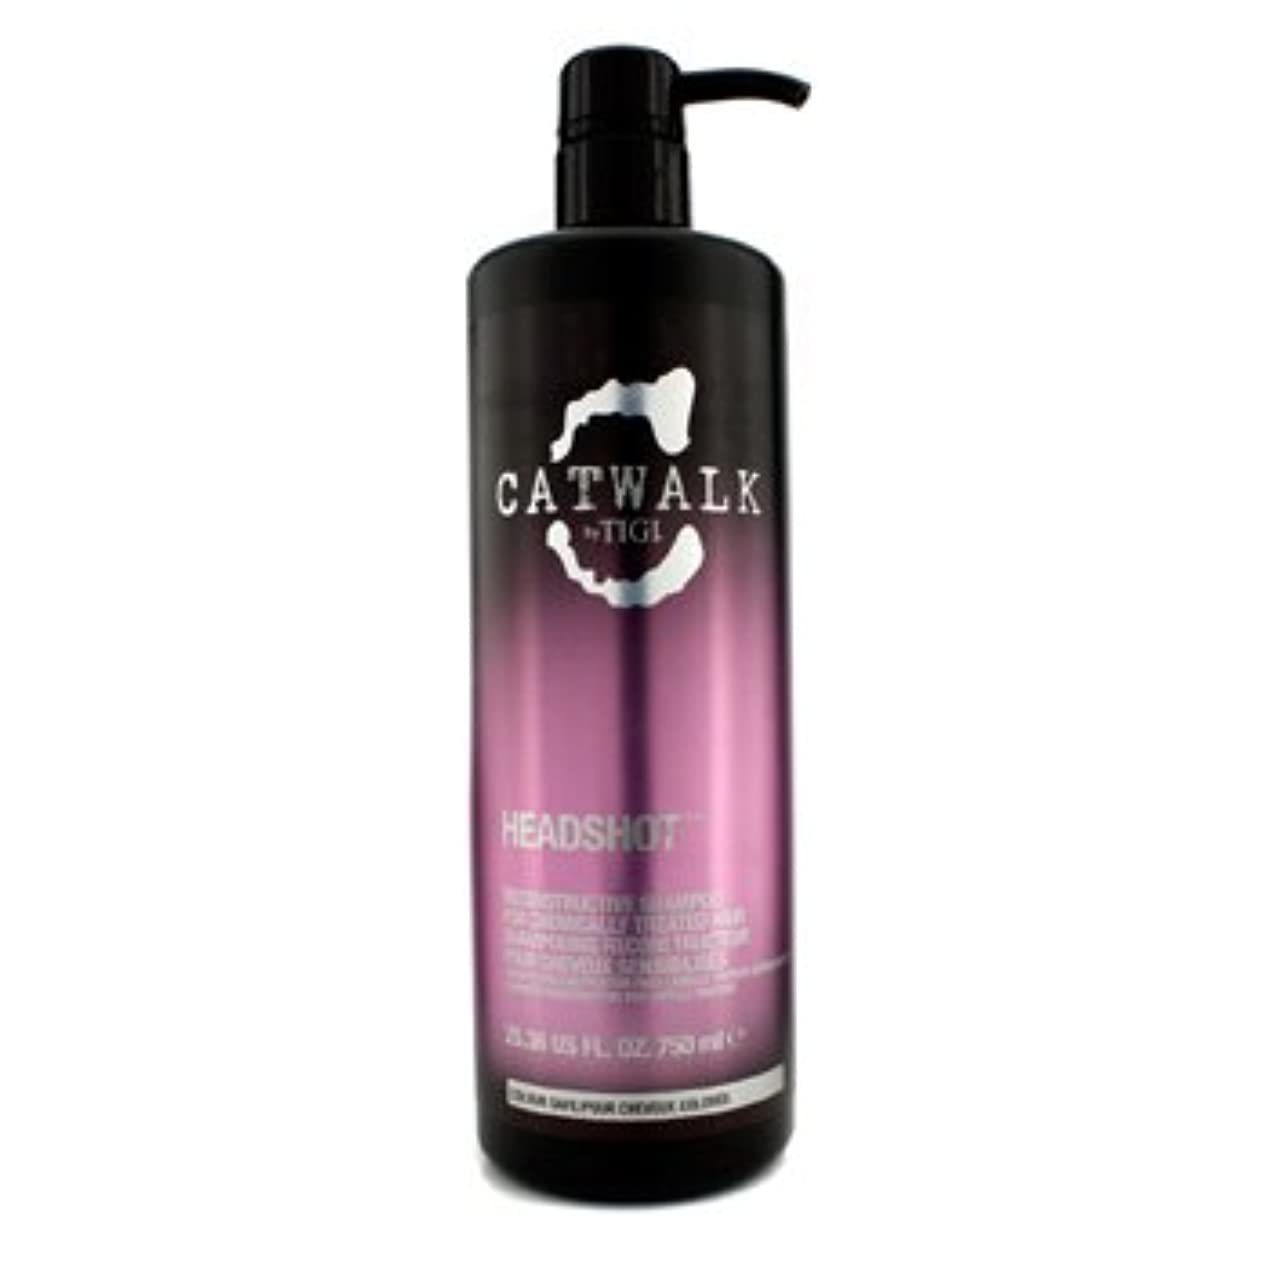 シロクマ誓約冬[Tigi] Catwalk Headshot Reconstructive Shampoo (For Chemically Treated Hair) 750ml/25.36oz